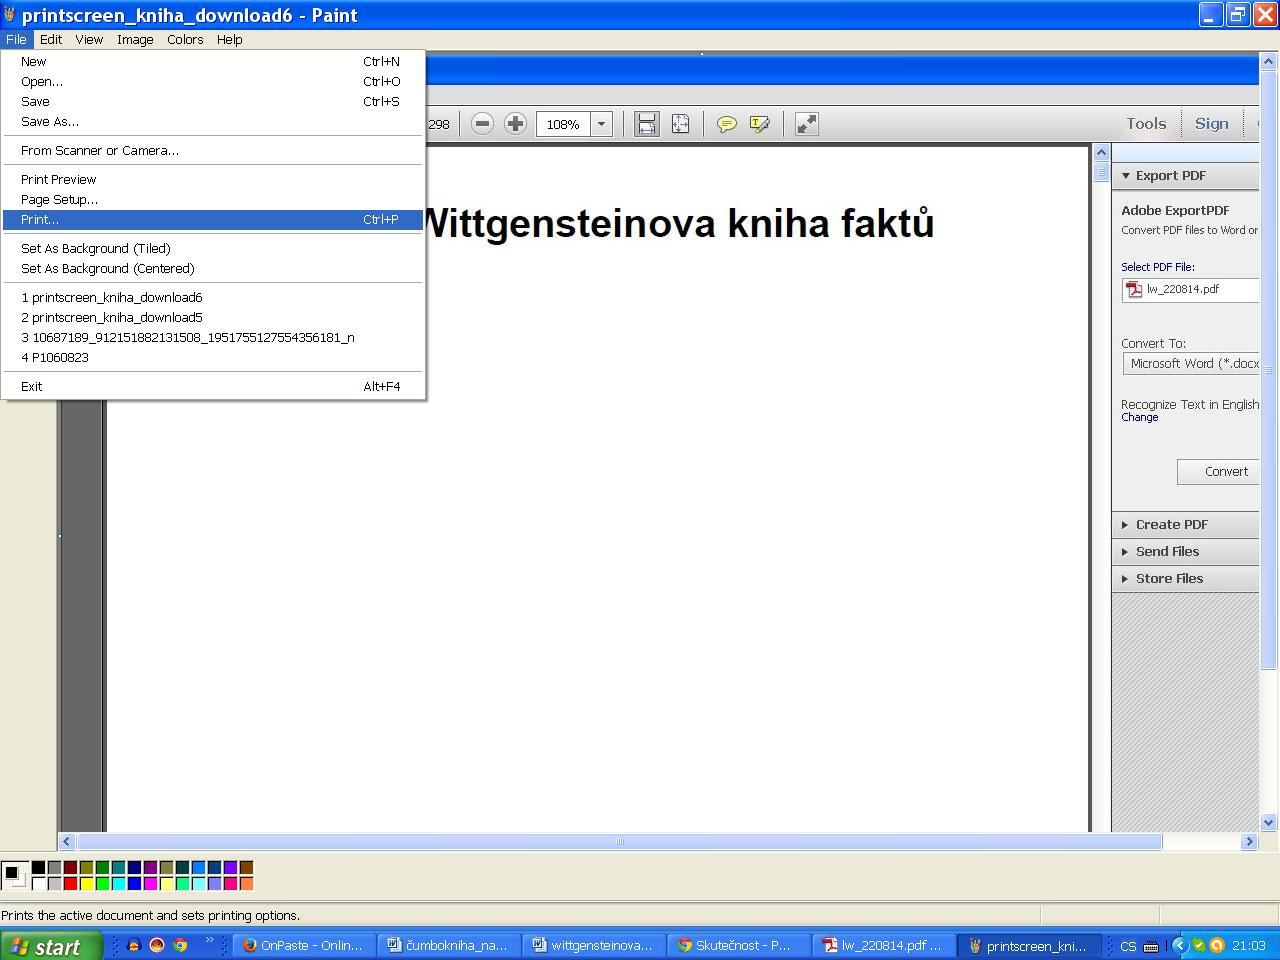 13 printscreen_kniha_download7